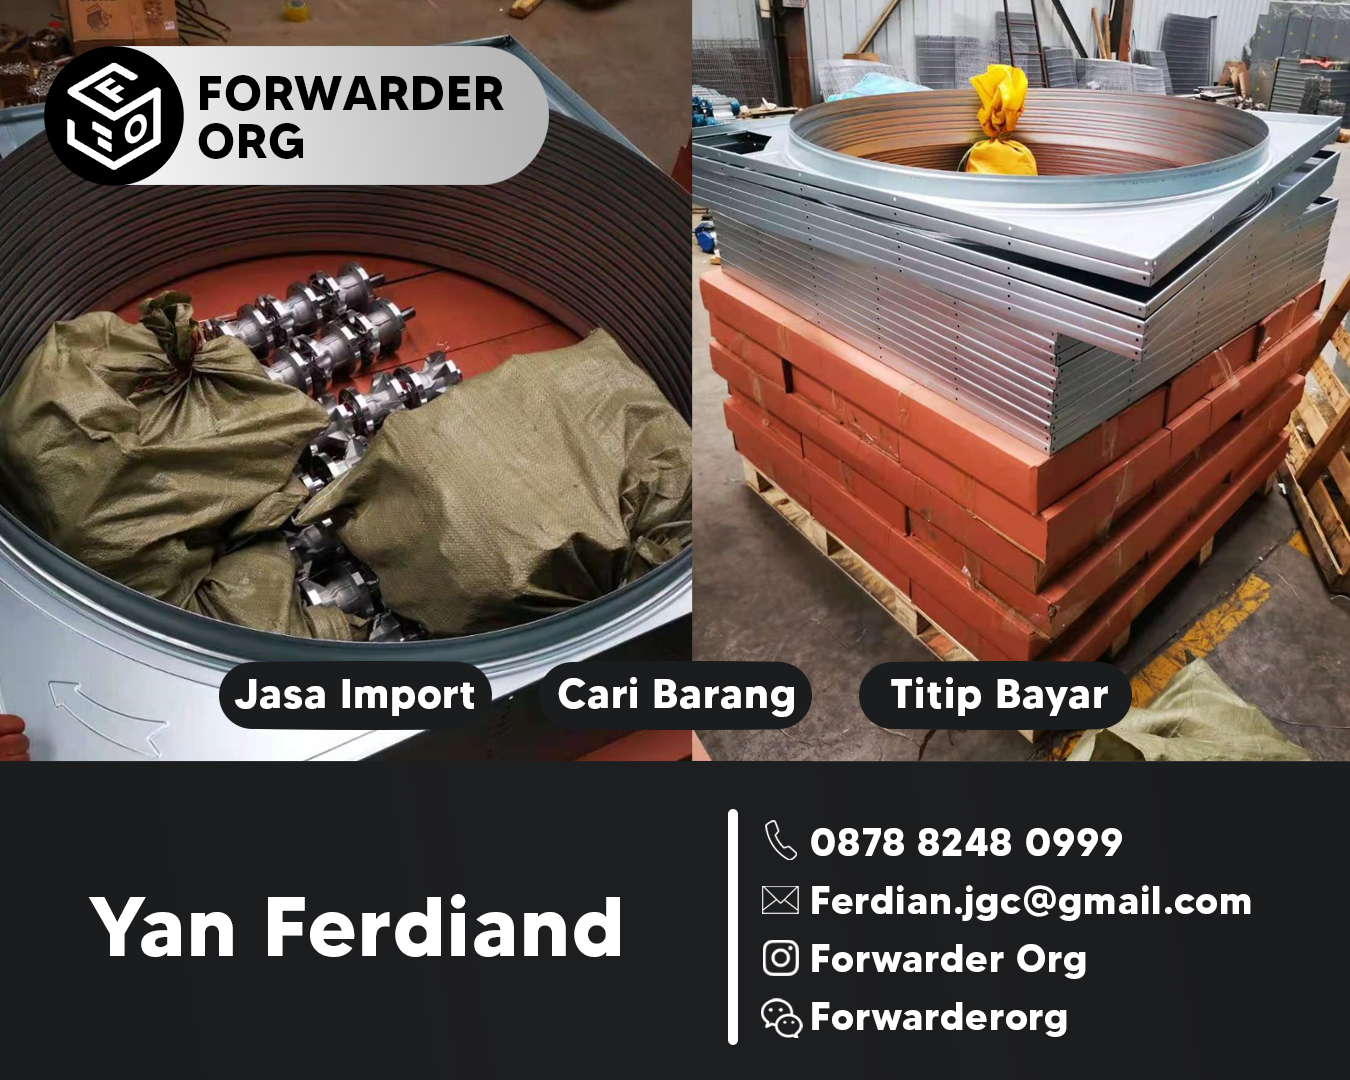 Jasa Import Exhaust Fan dan Blower dari China | FORWARDER ORG